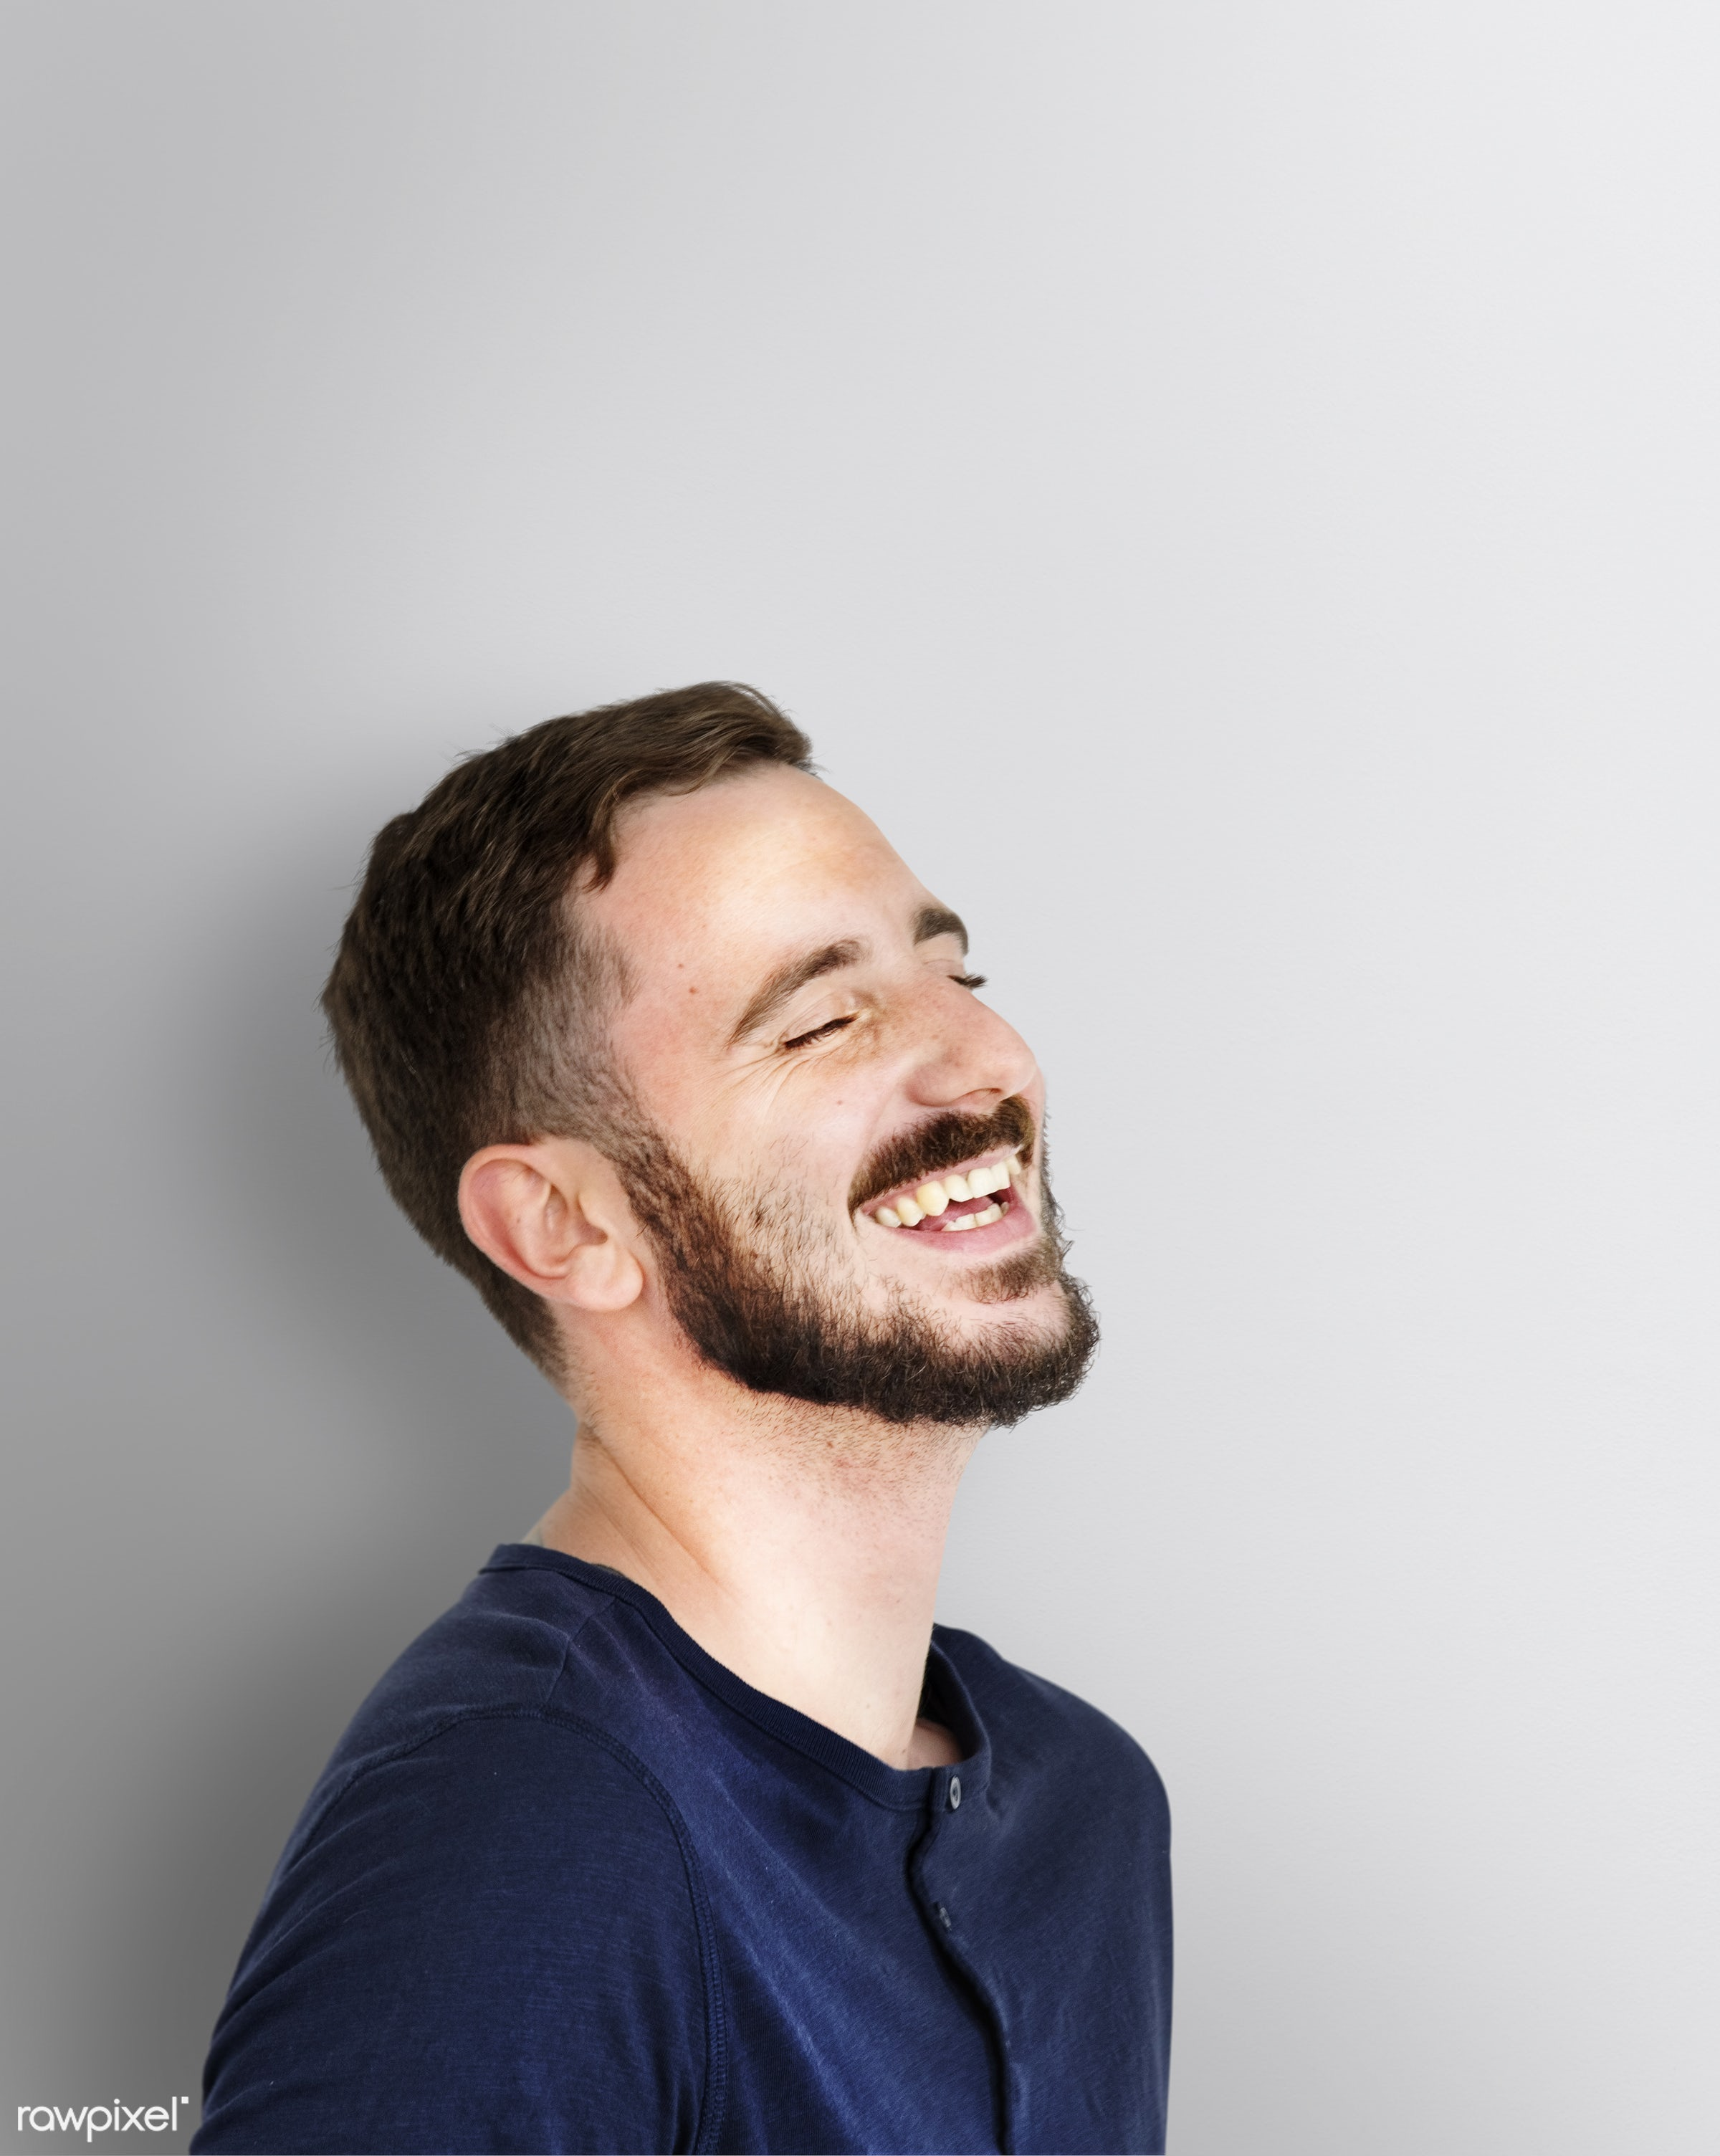 expression, face, isolated on white, joy, carefree, laughing, happy, lifestyle, casual, smile, cheerful, smiling, man,...